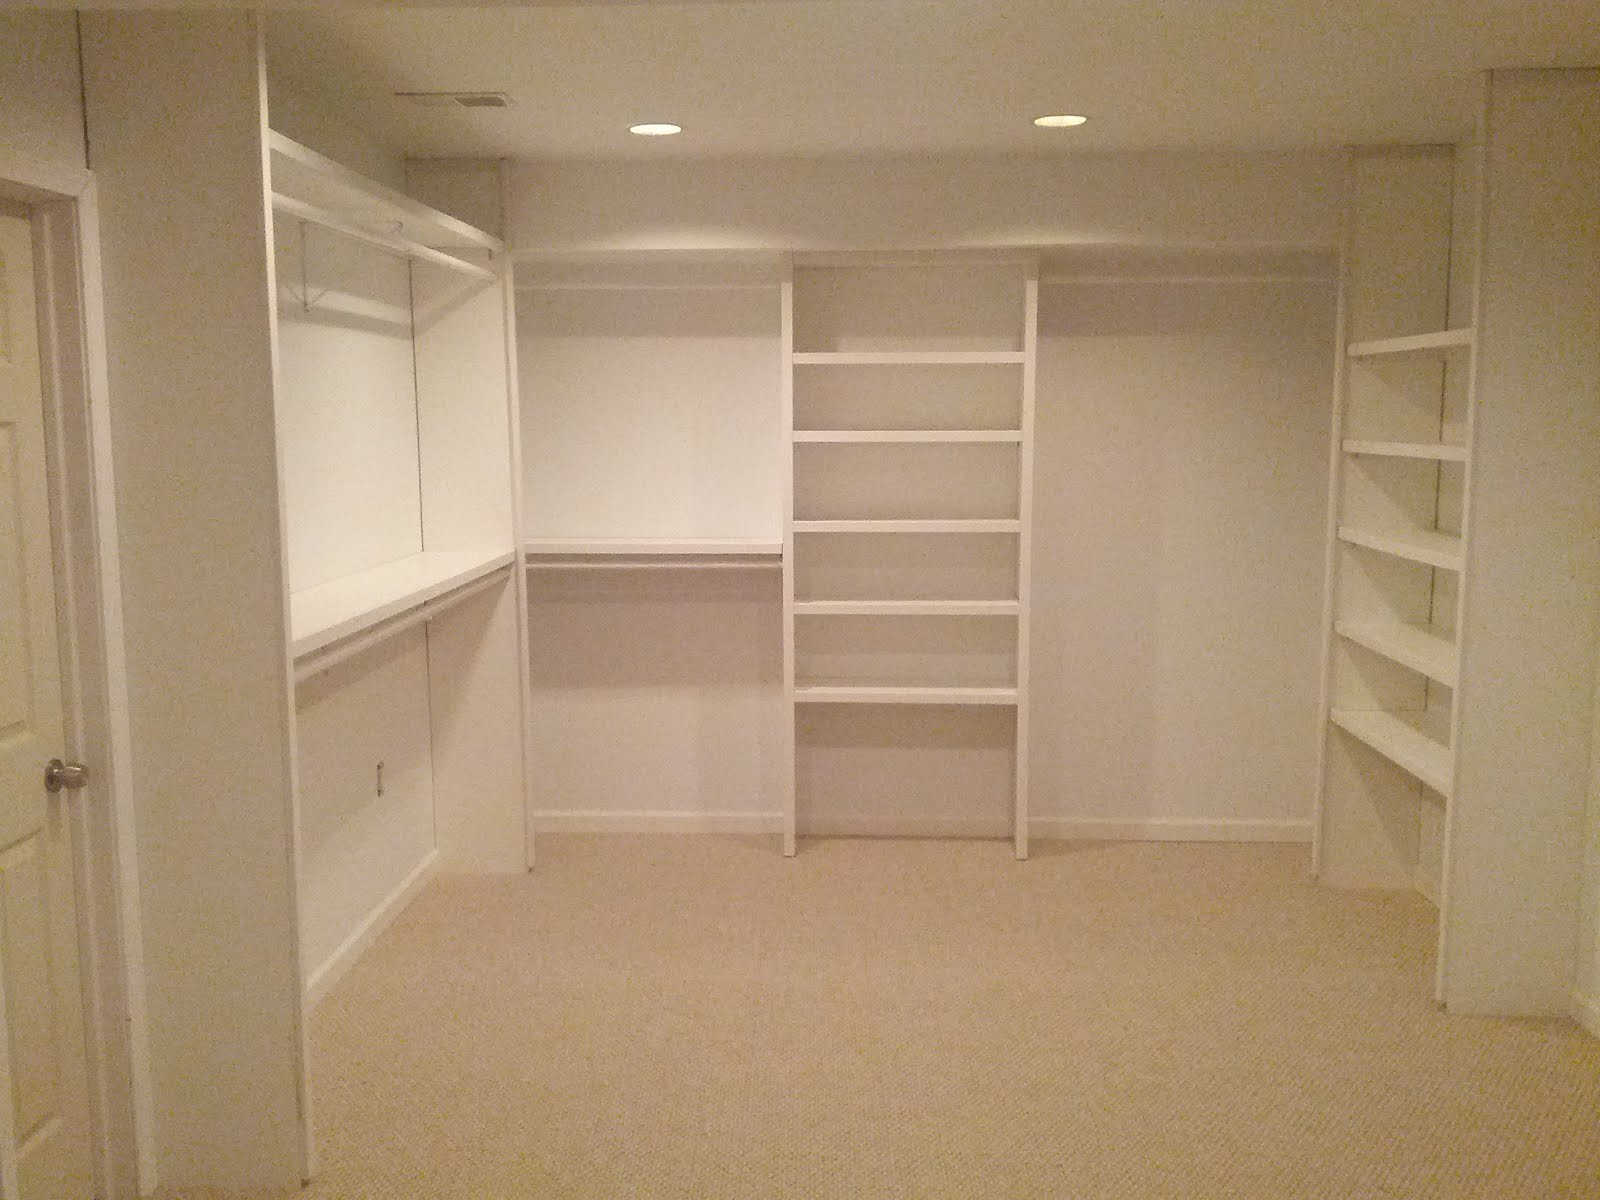 Top value construction llc custom closet build for Custom closet images